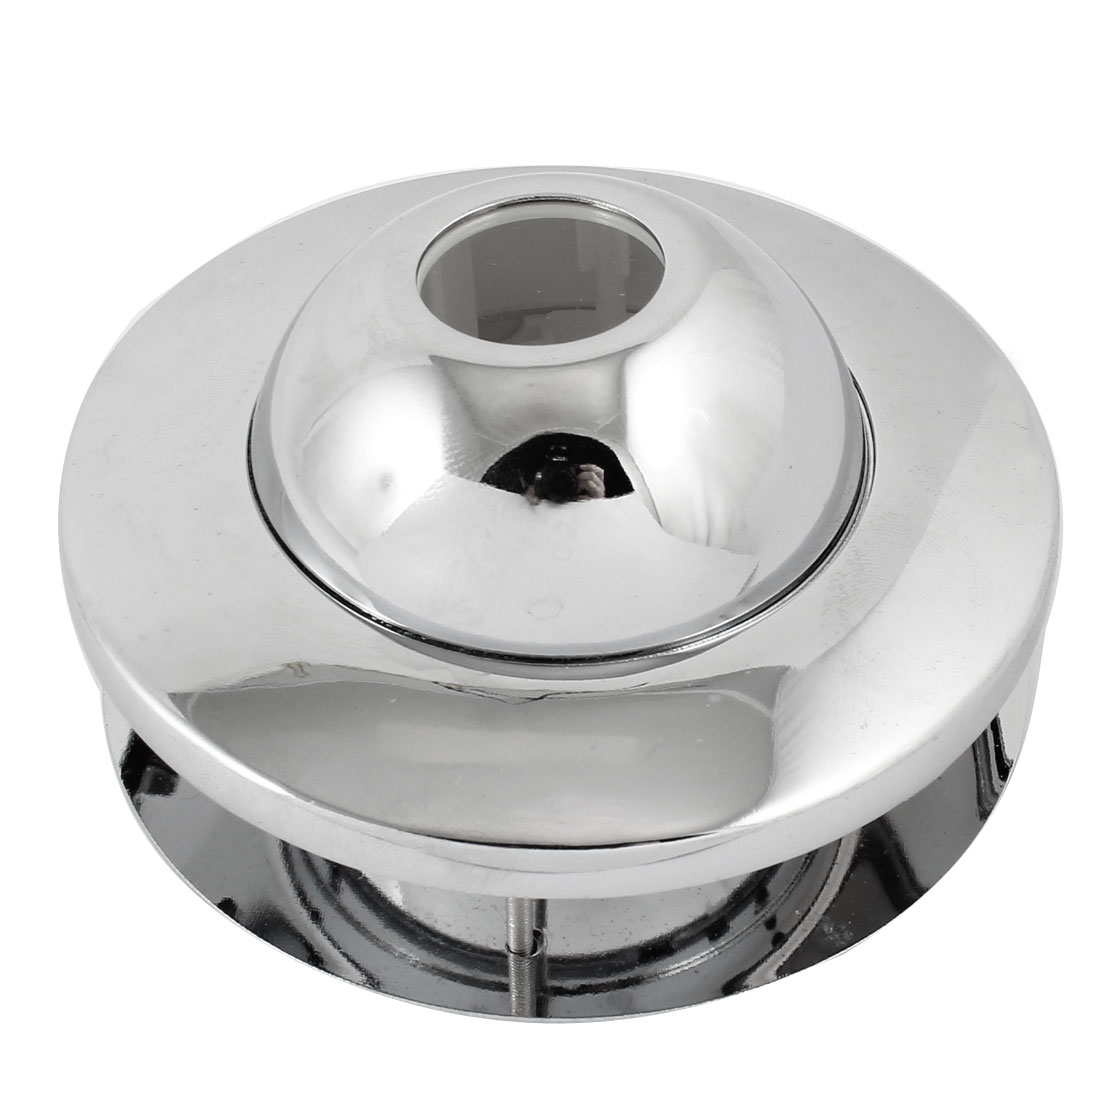 Elevator UFO Shaped Aluminum CCTV Dome Camera Housing Case 11cm